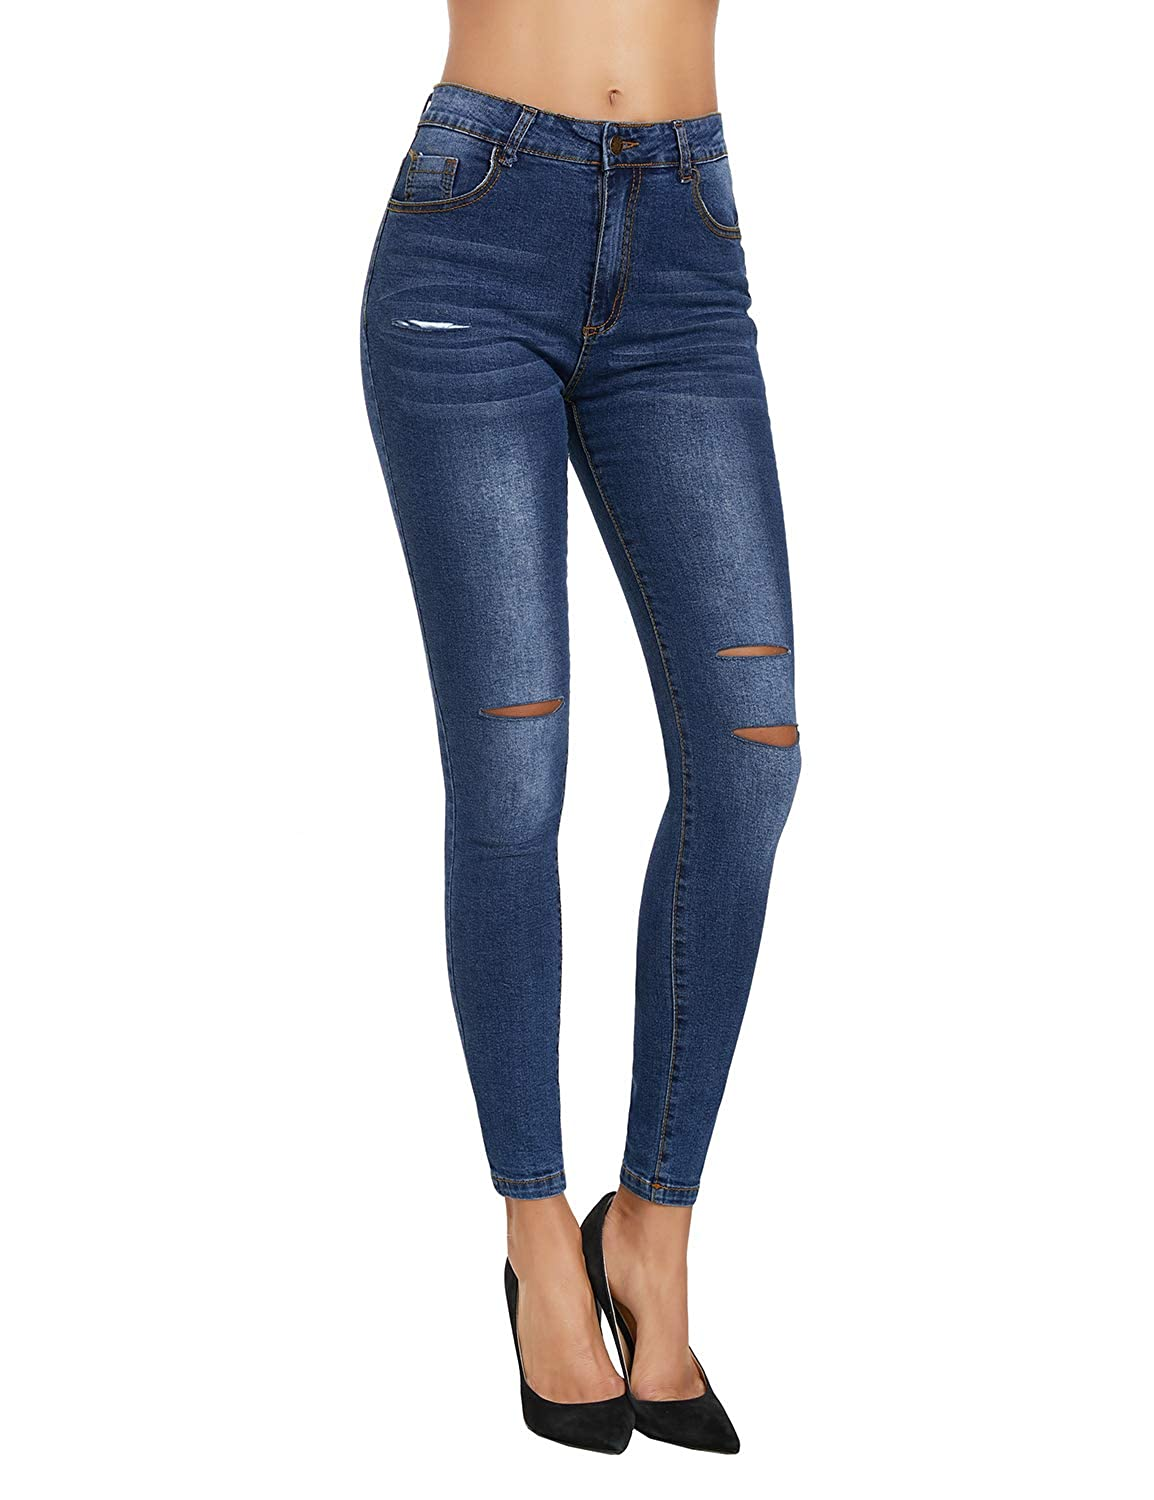 ec085cab36d This skinny jeans pants comes with ripped slits in front and slightly  fadded washed front and back. Mid rise denim trousers also comes with  traditional 5 ...